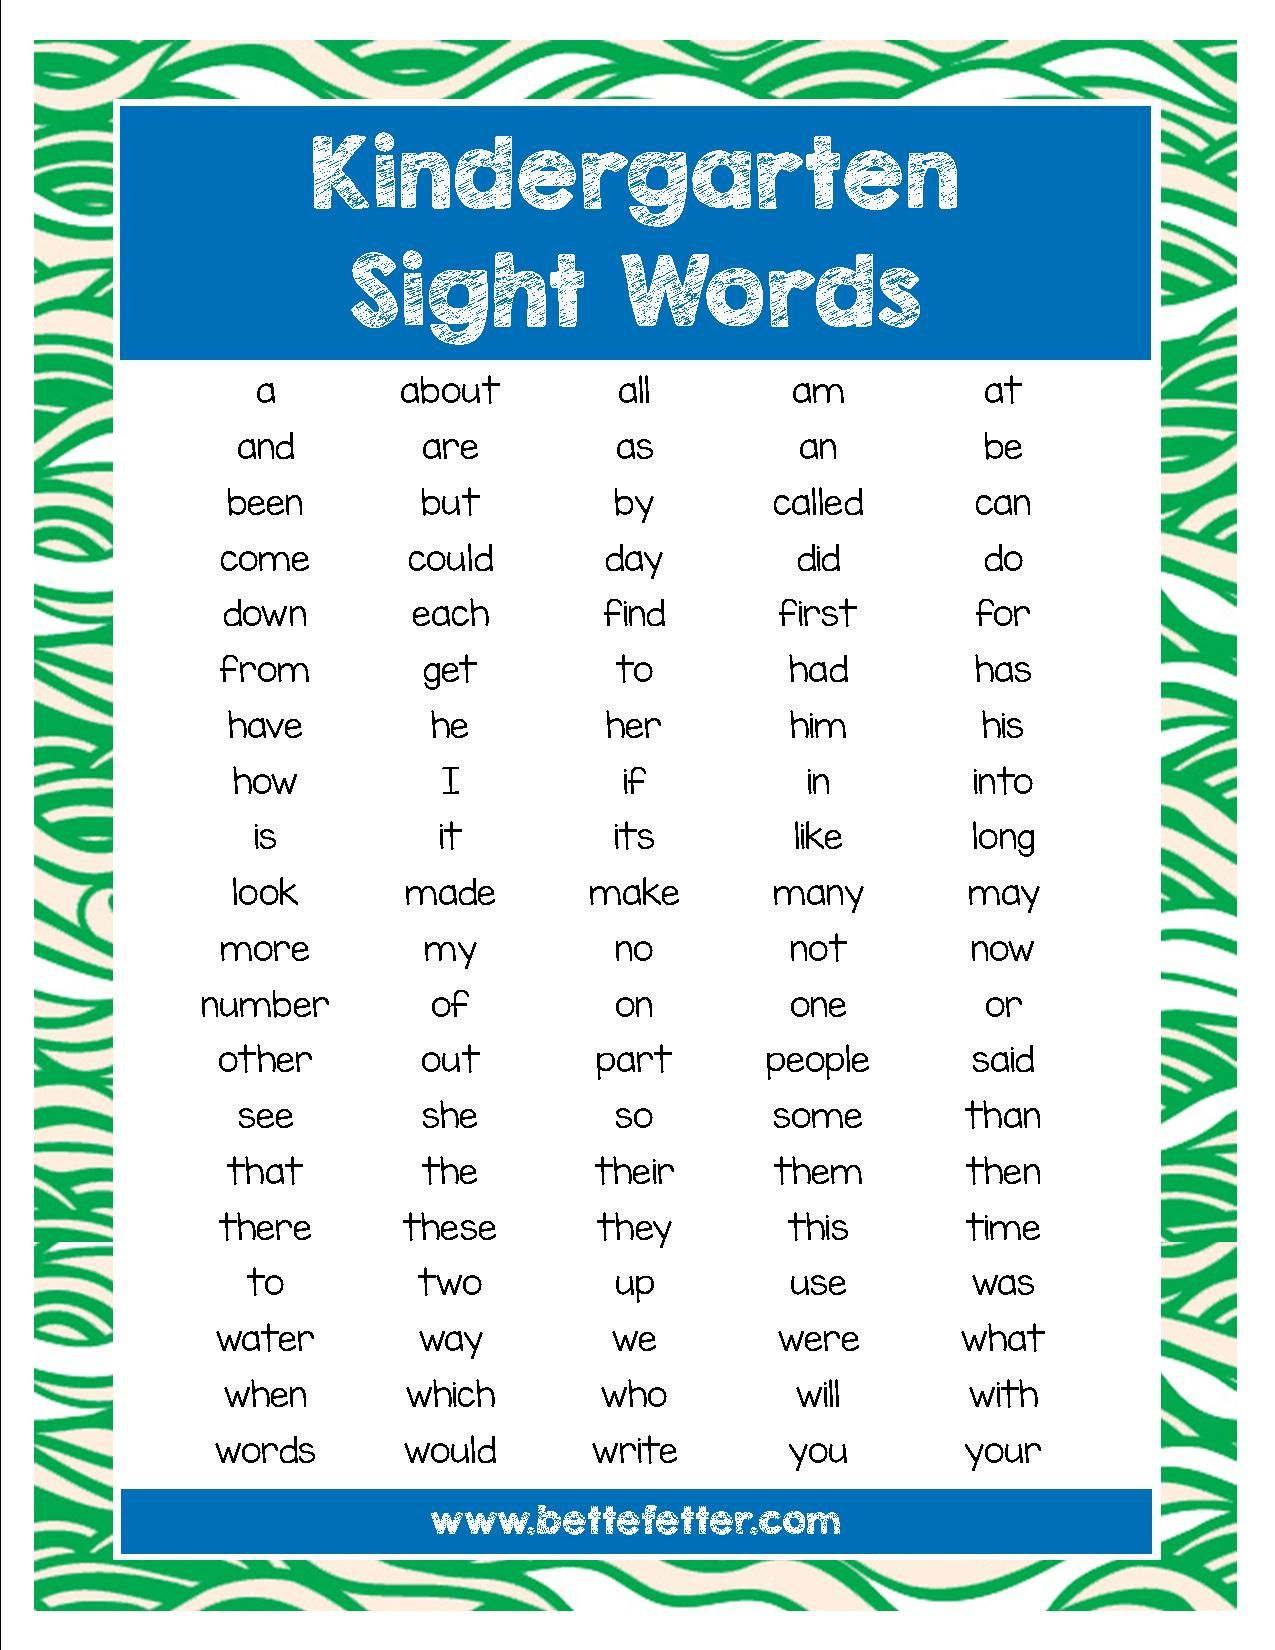 100 Sight Words Your Child Should Know